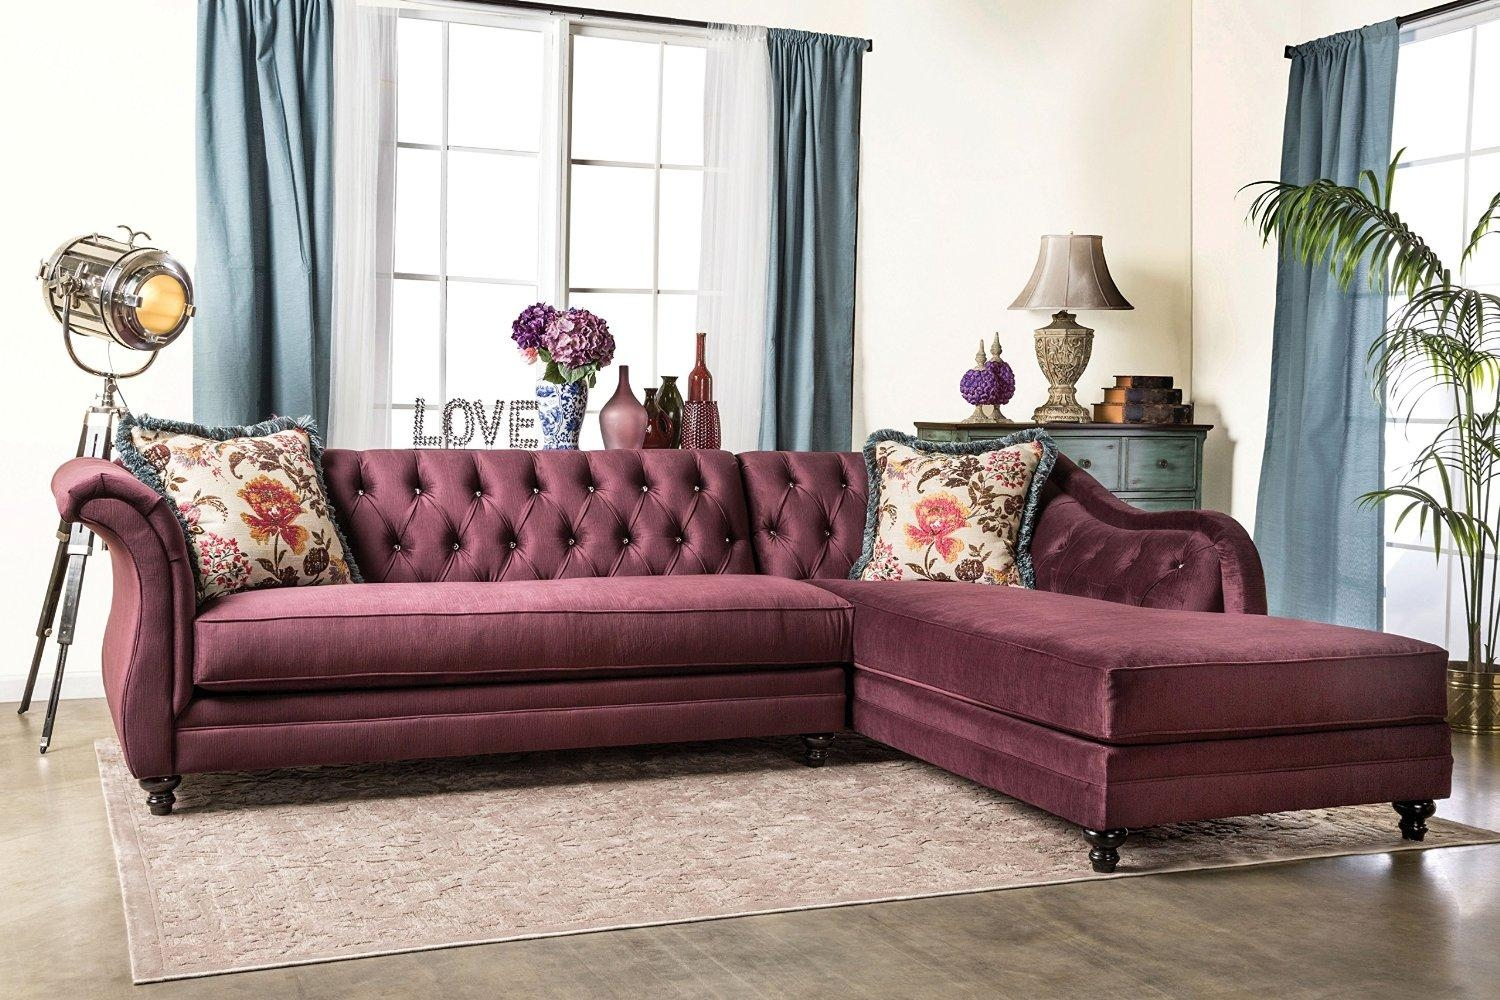 25 Best Chesterfield Sofas To Buy In 2017 Throughout Leather Chesterfield Sofas (Image 3 of 20)